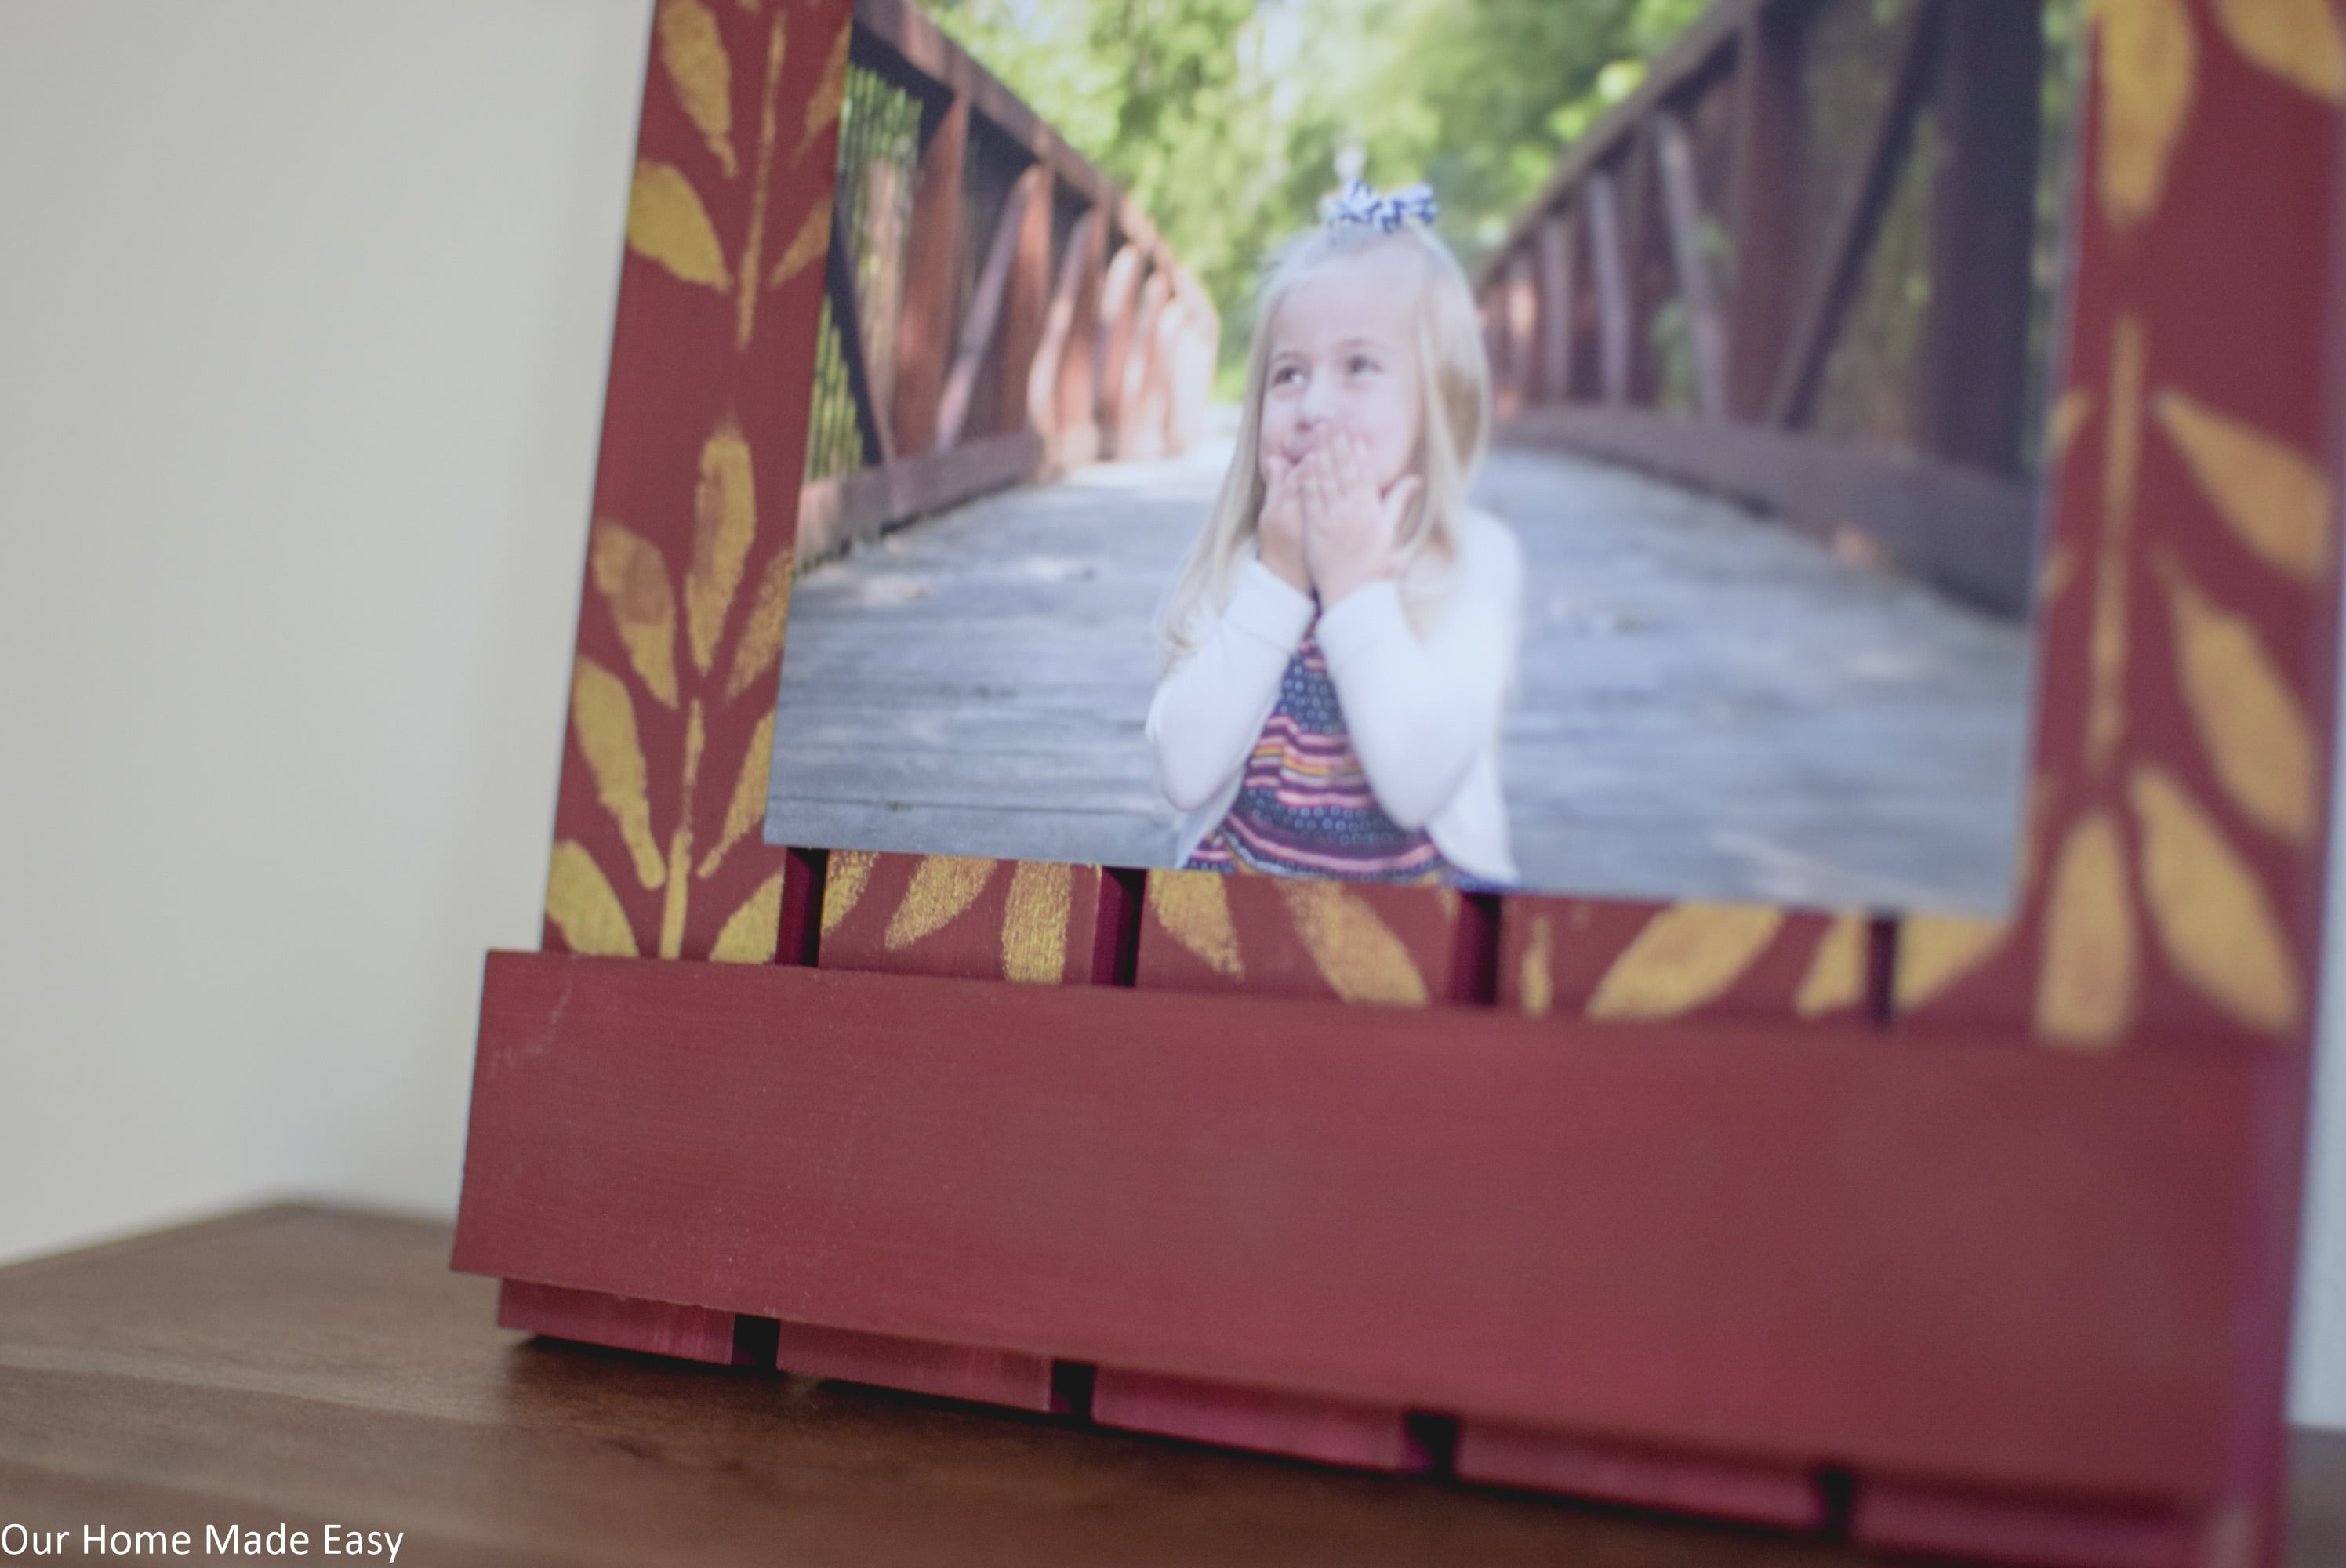 This homemade wood picture frame is a simple DIY project